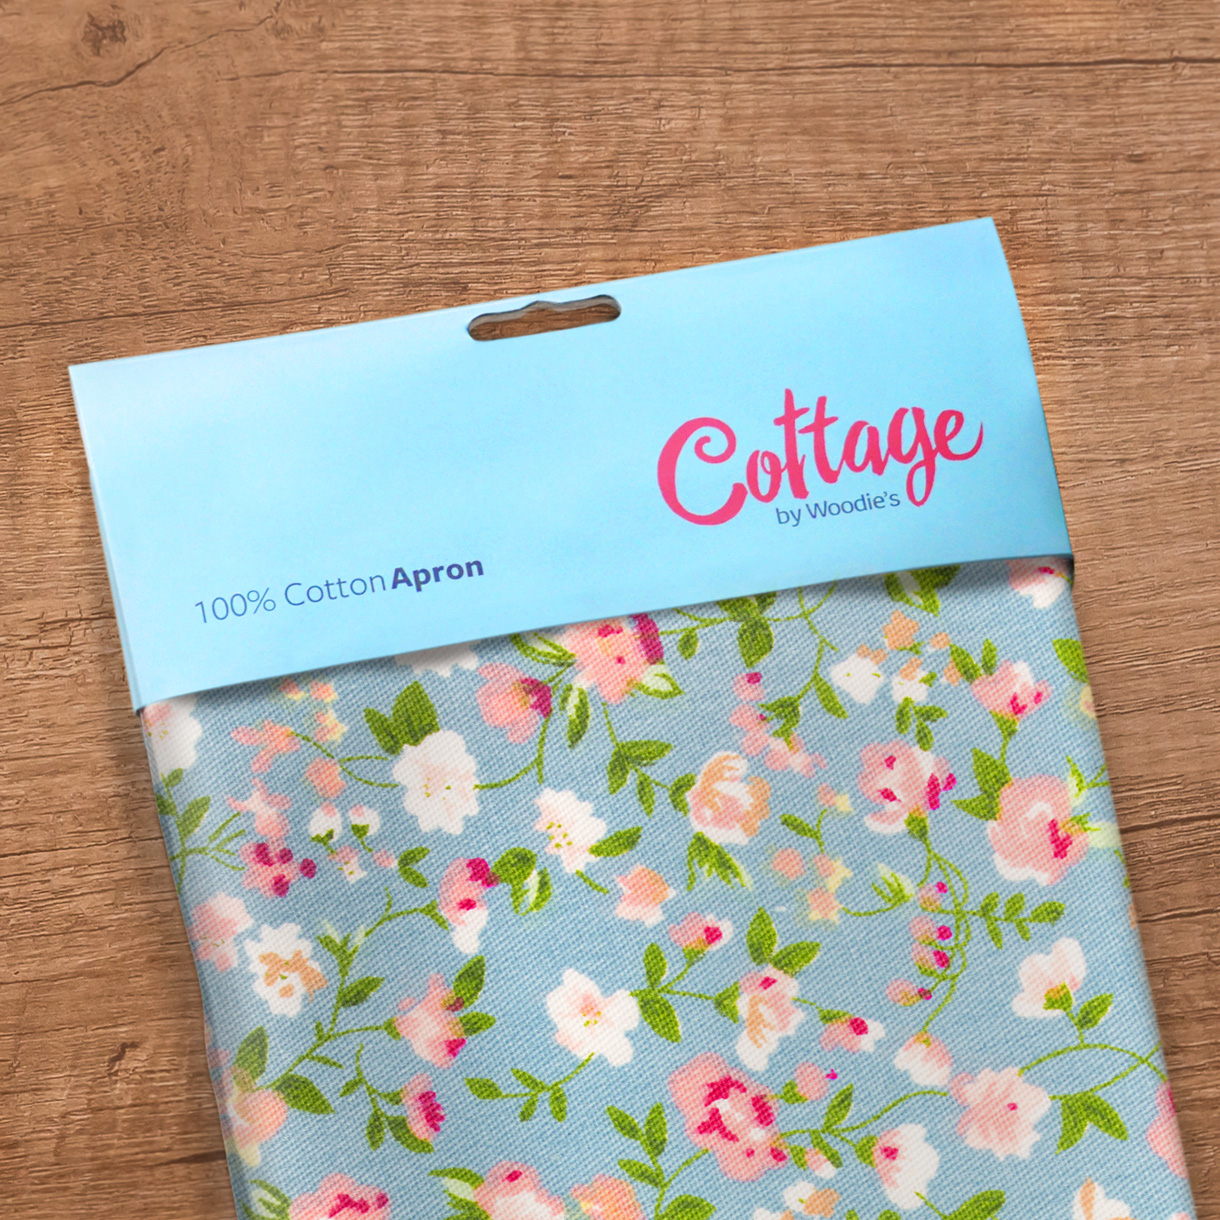 Principle brand agency Dublin Woodie's homewares brand design project cottage collection apron packaging